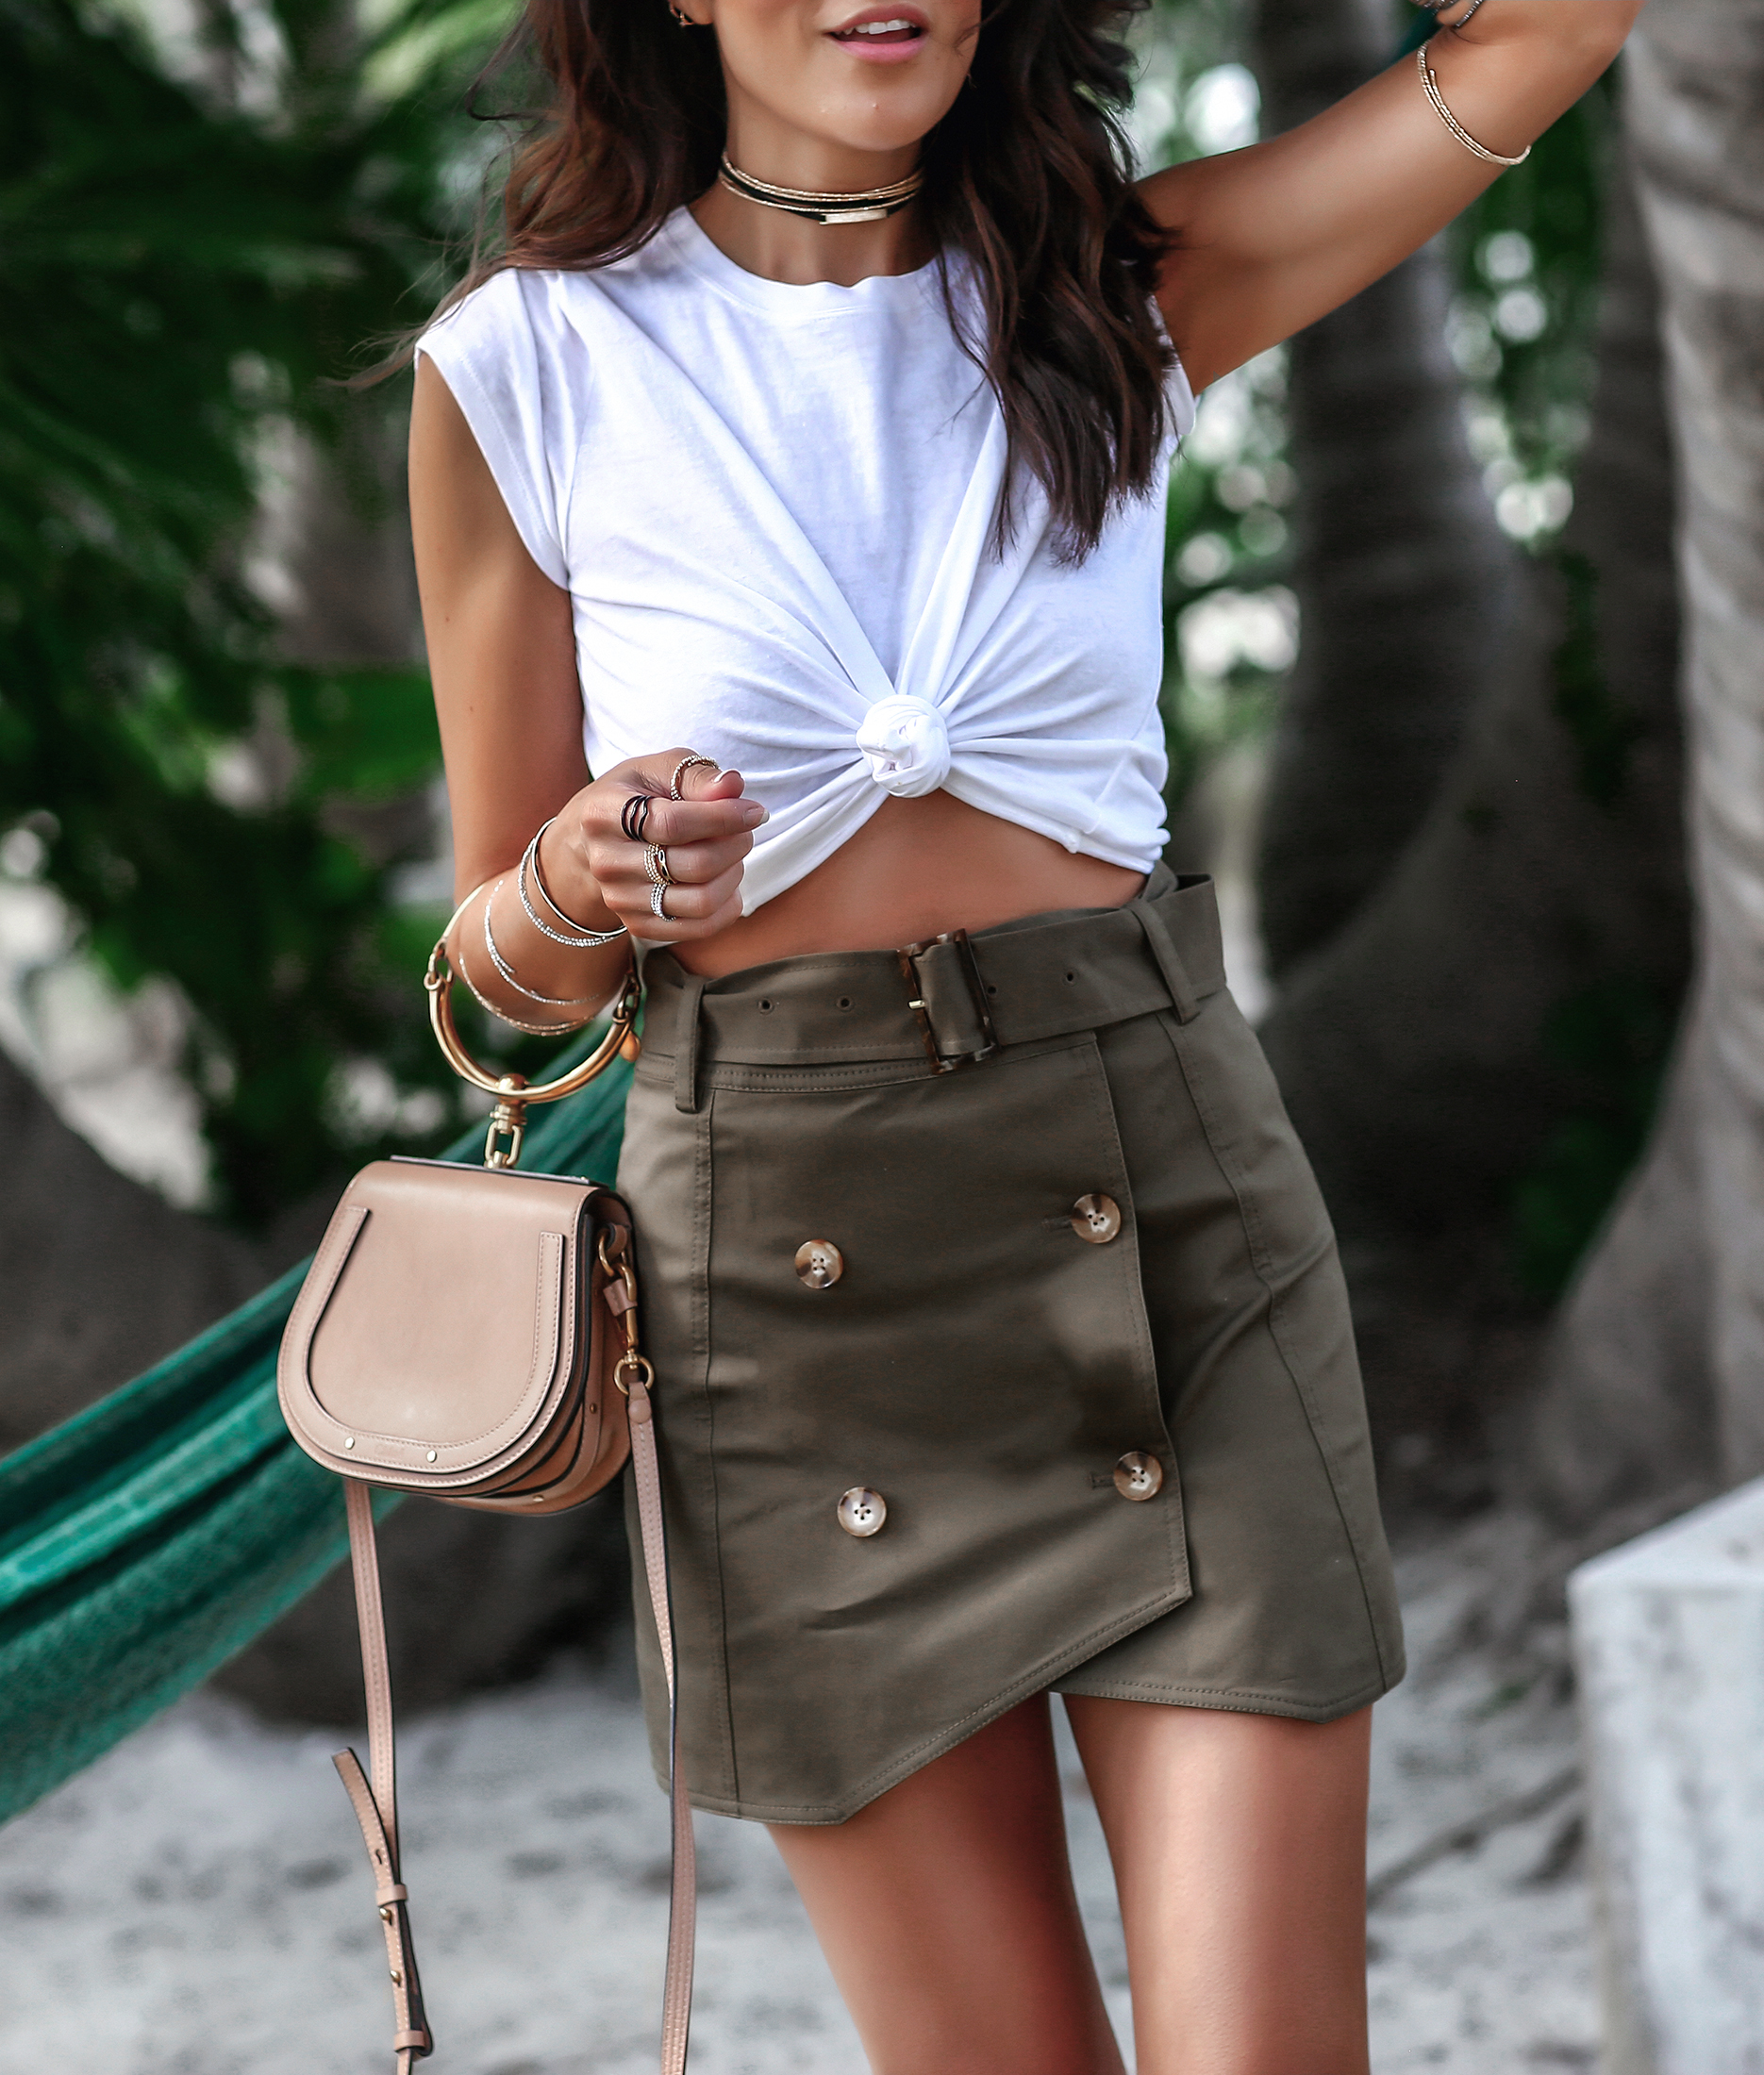 Brunette Woman in The Bahamas in Exclusive Intermix Fashion for Spring Break .jpg